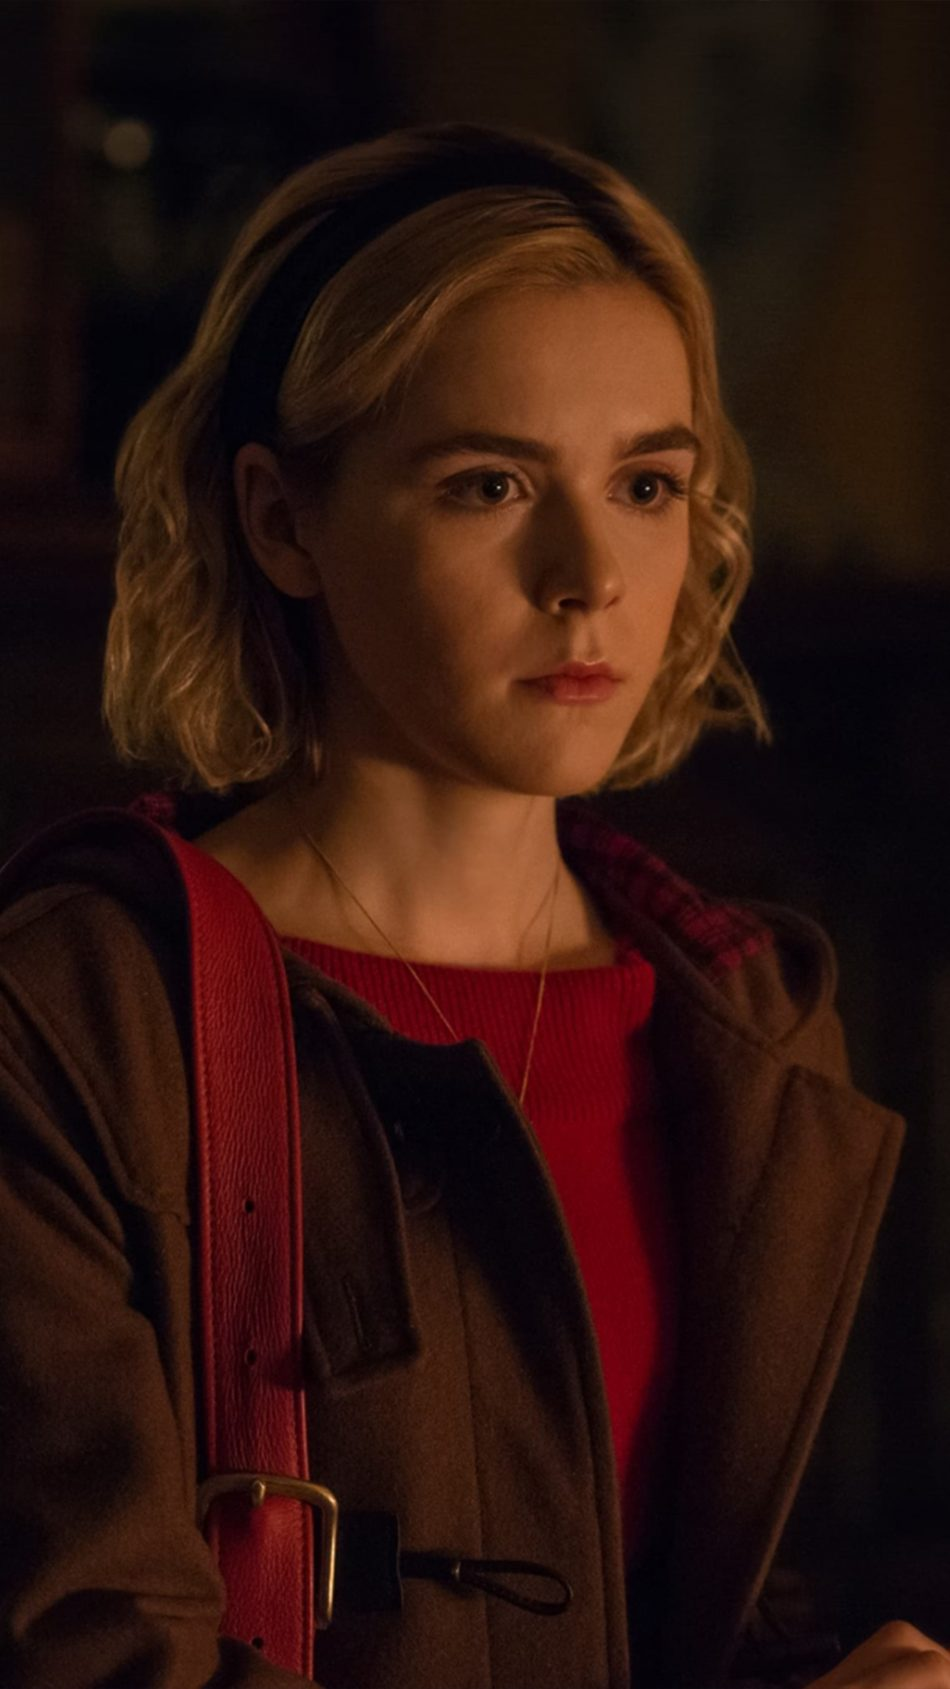 Kiernan Shipka In The Chilling Adventures of Sabrina 4K Ultra HD Mobile Wallpaper